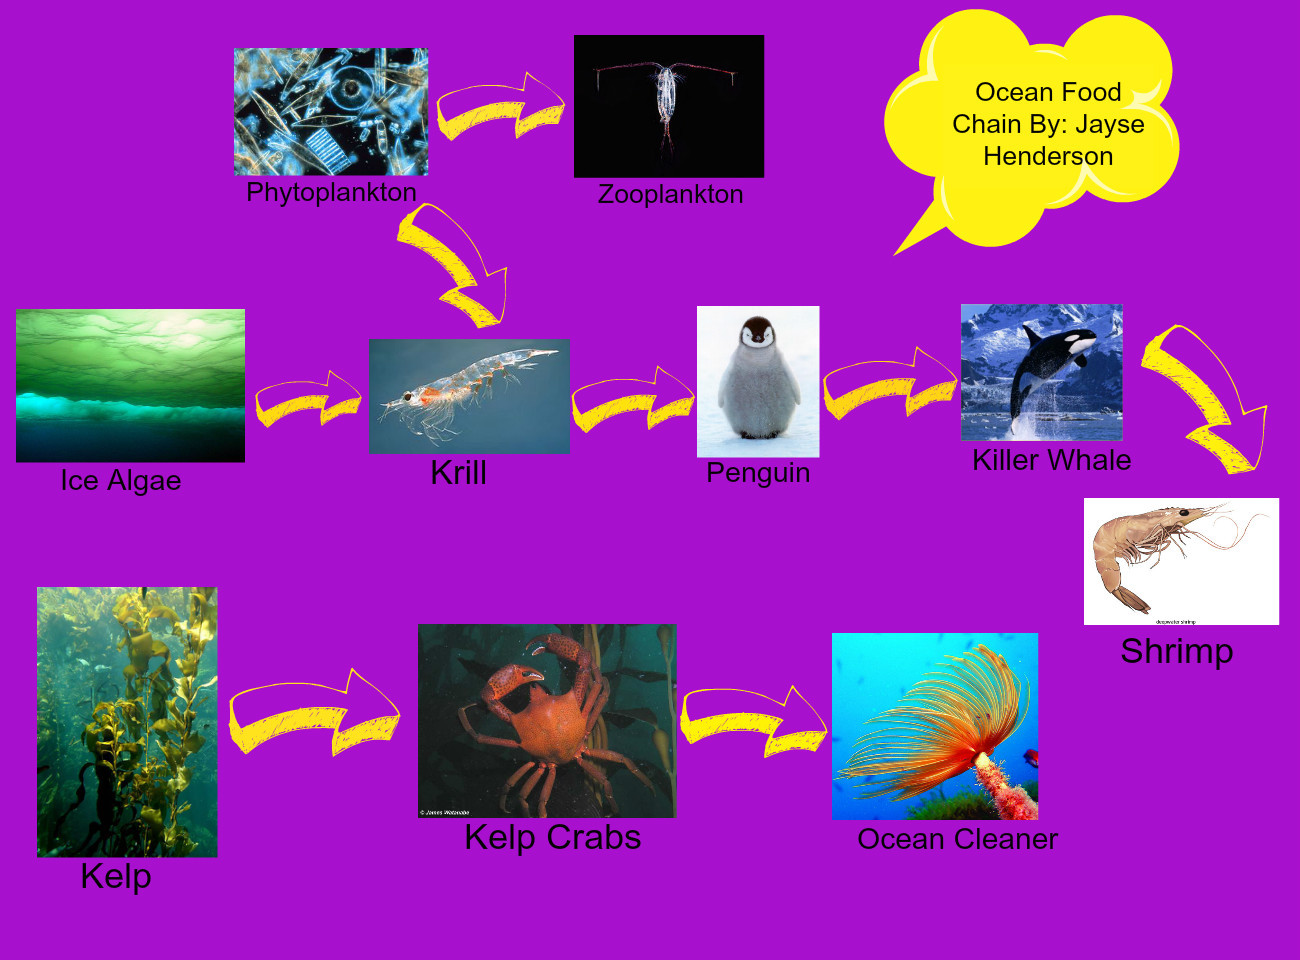 pacific ocean food web diagram toyota corolla wiring stereo simple marine chain pictures to pin on pinterest